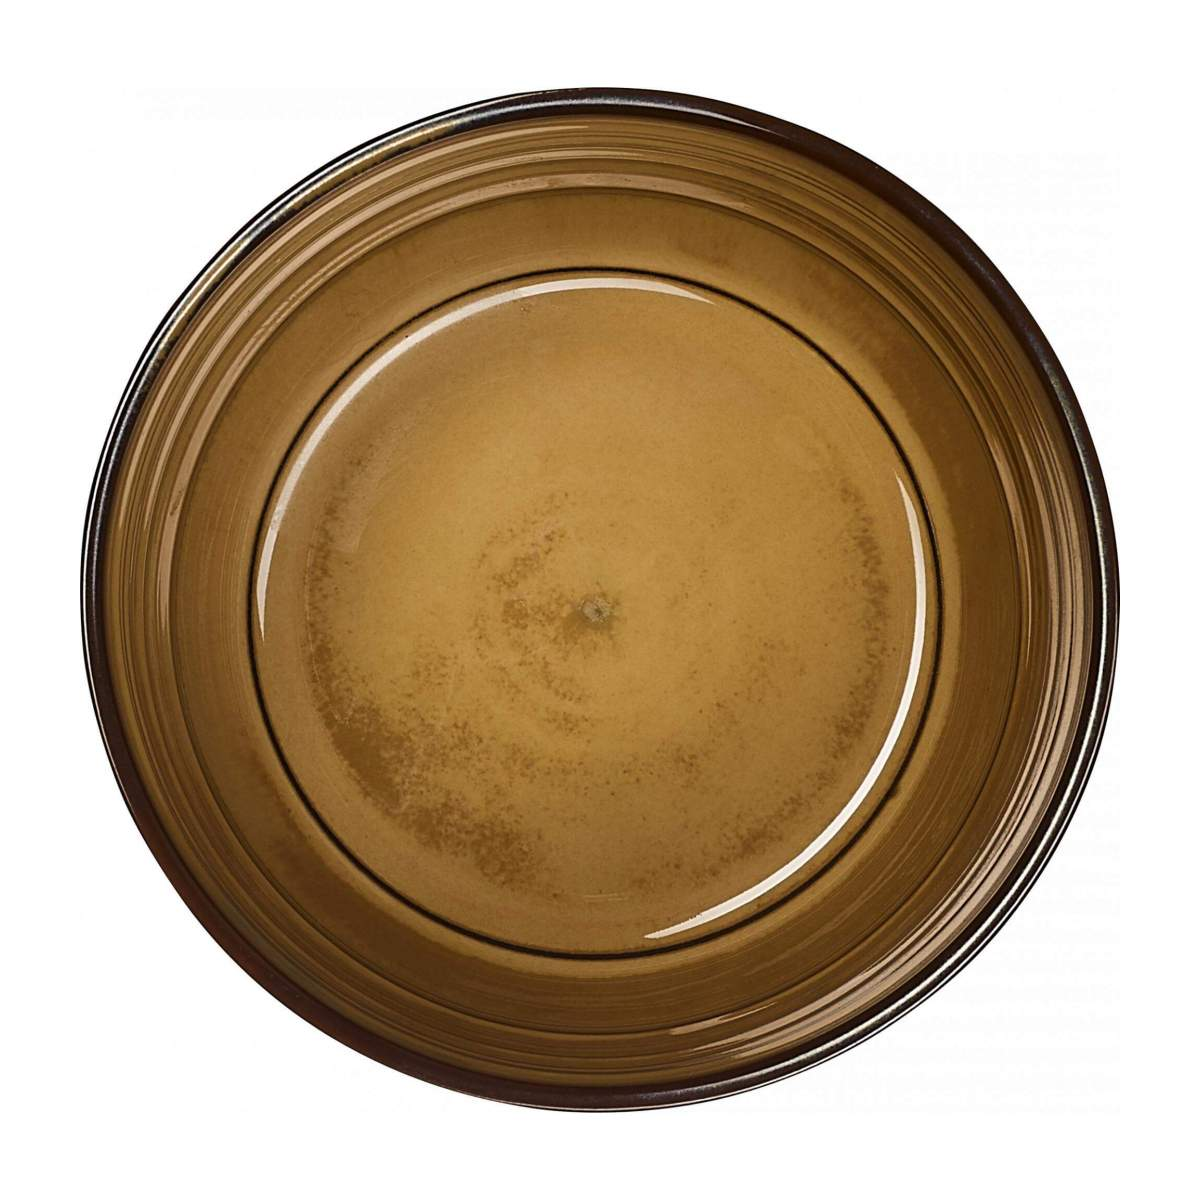 RESTONICA/PORCELAIN BOWL BROWN 12CM